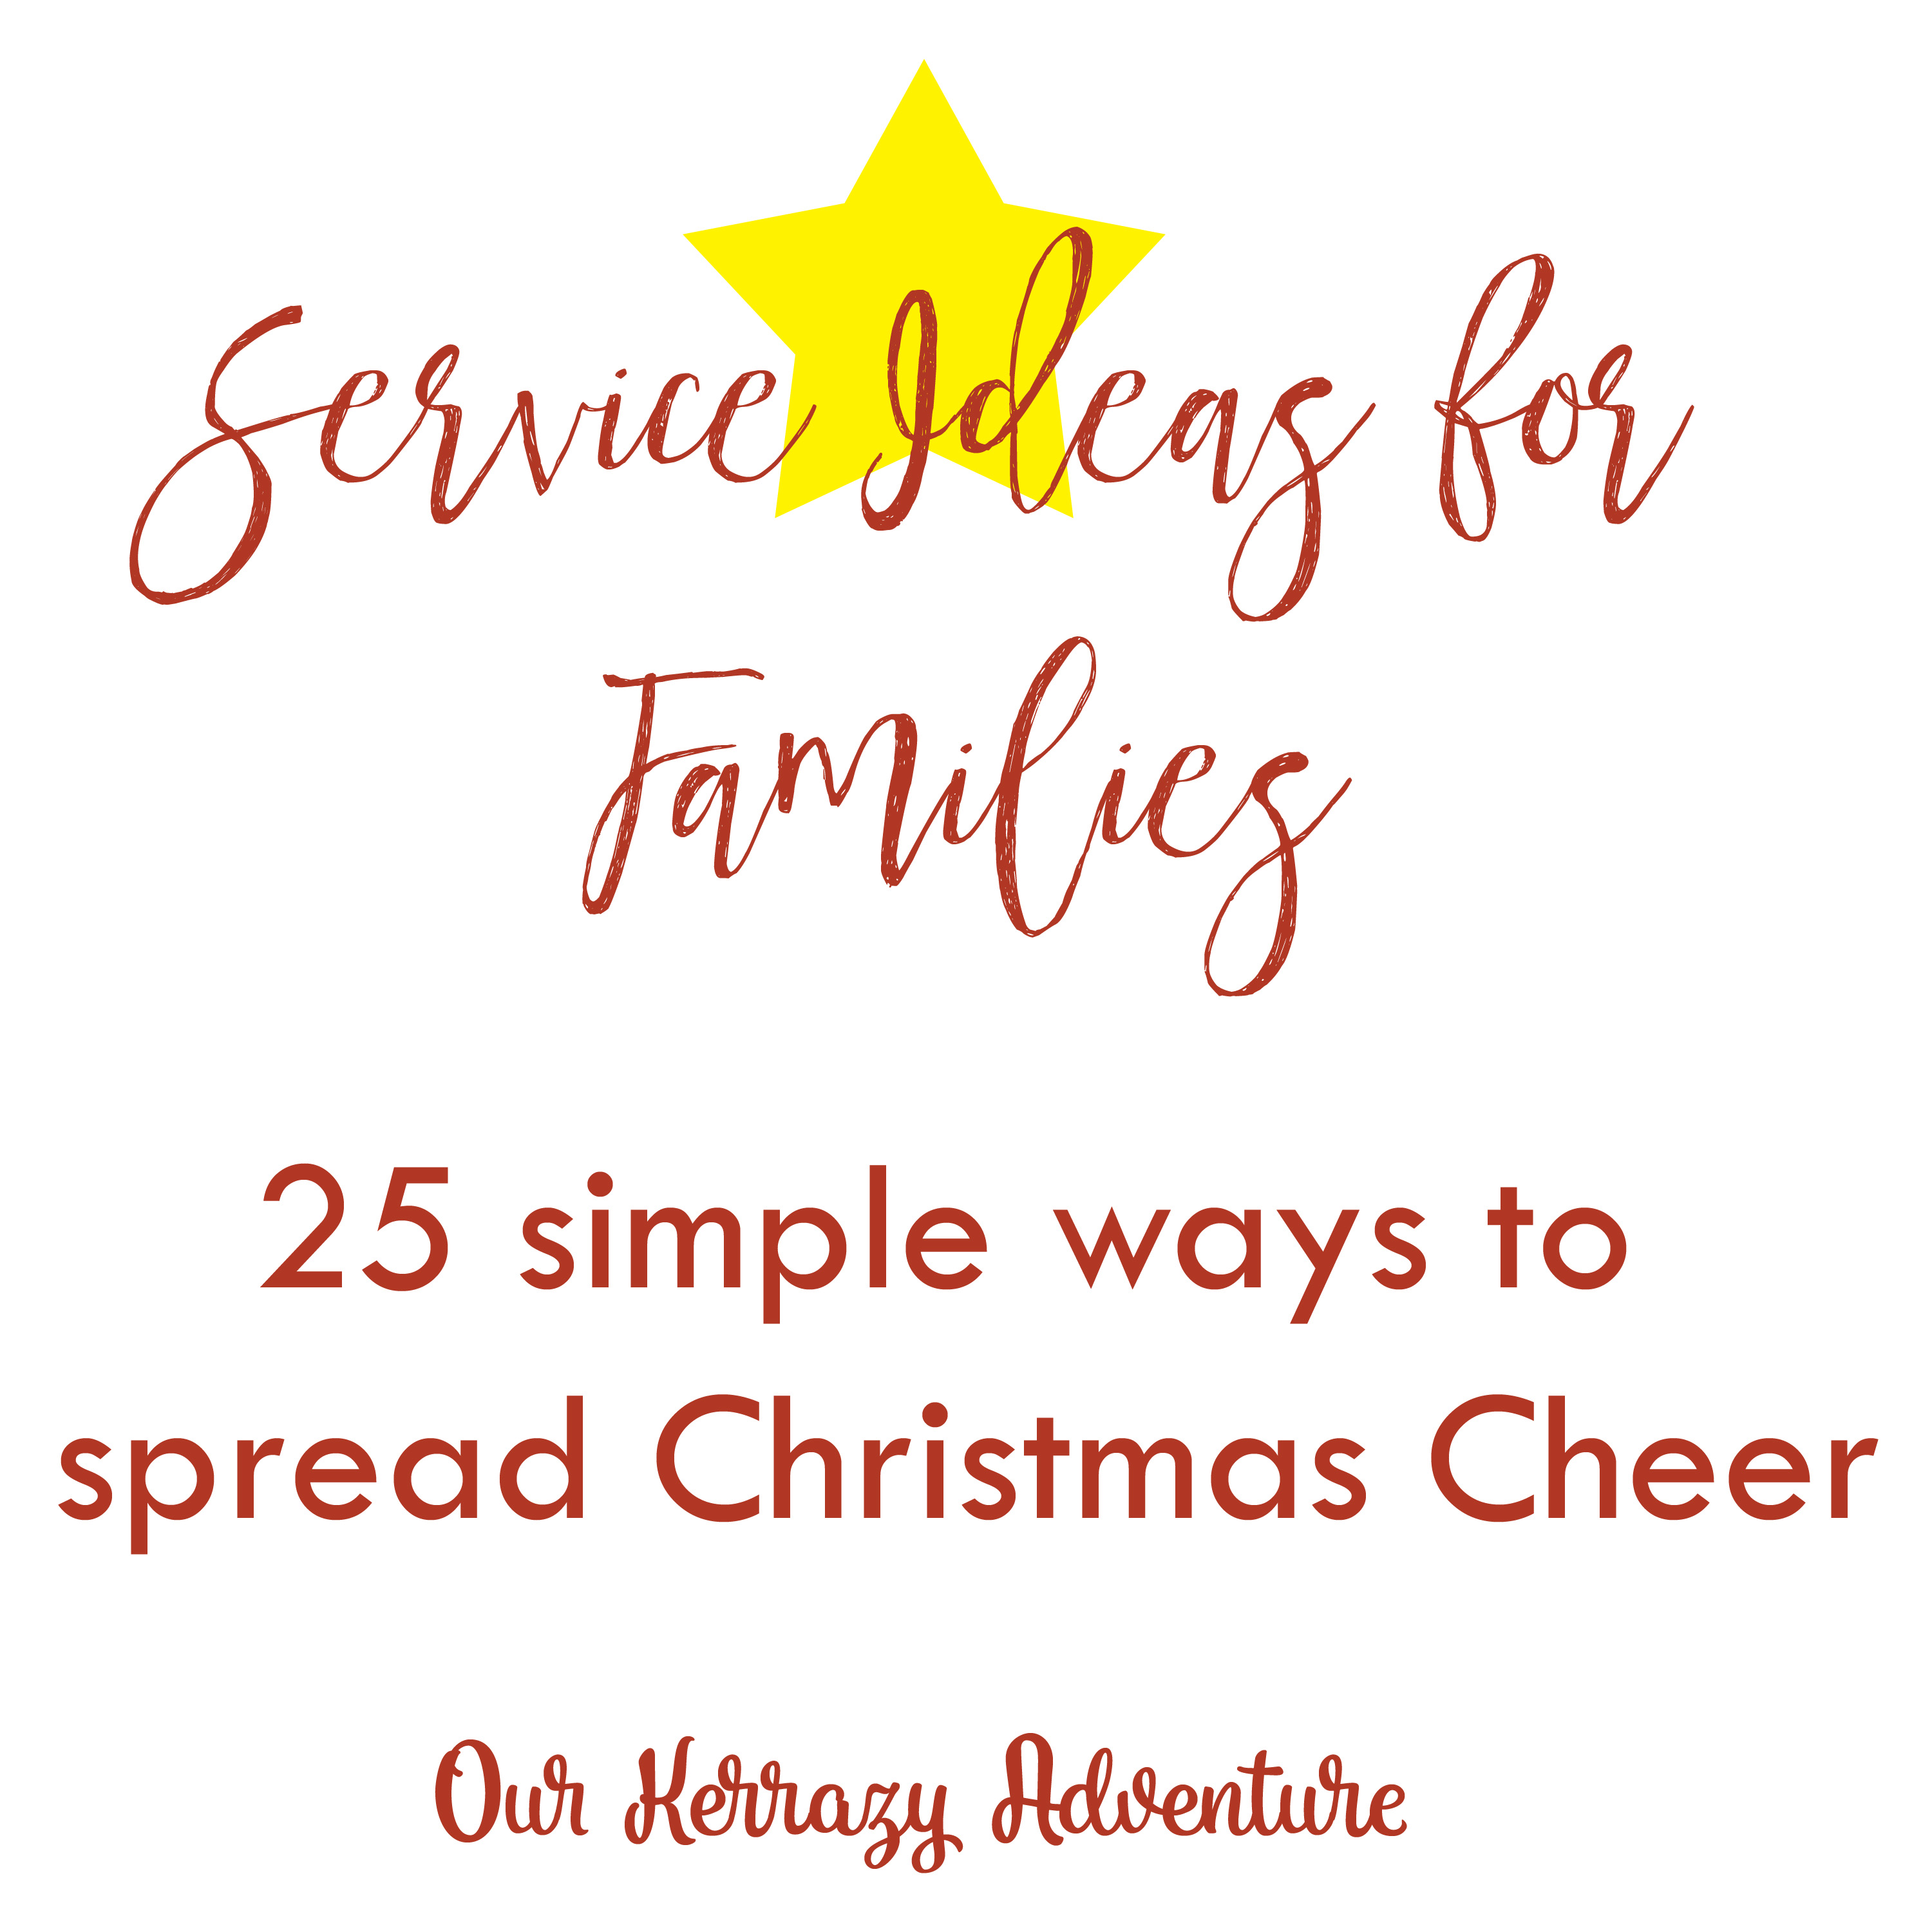 Service Ideas for Families - Our Kerrazy Adventure